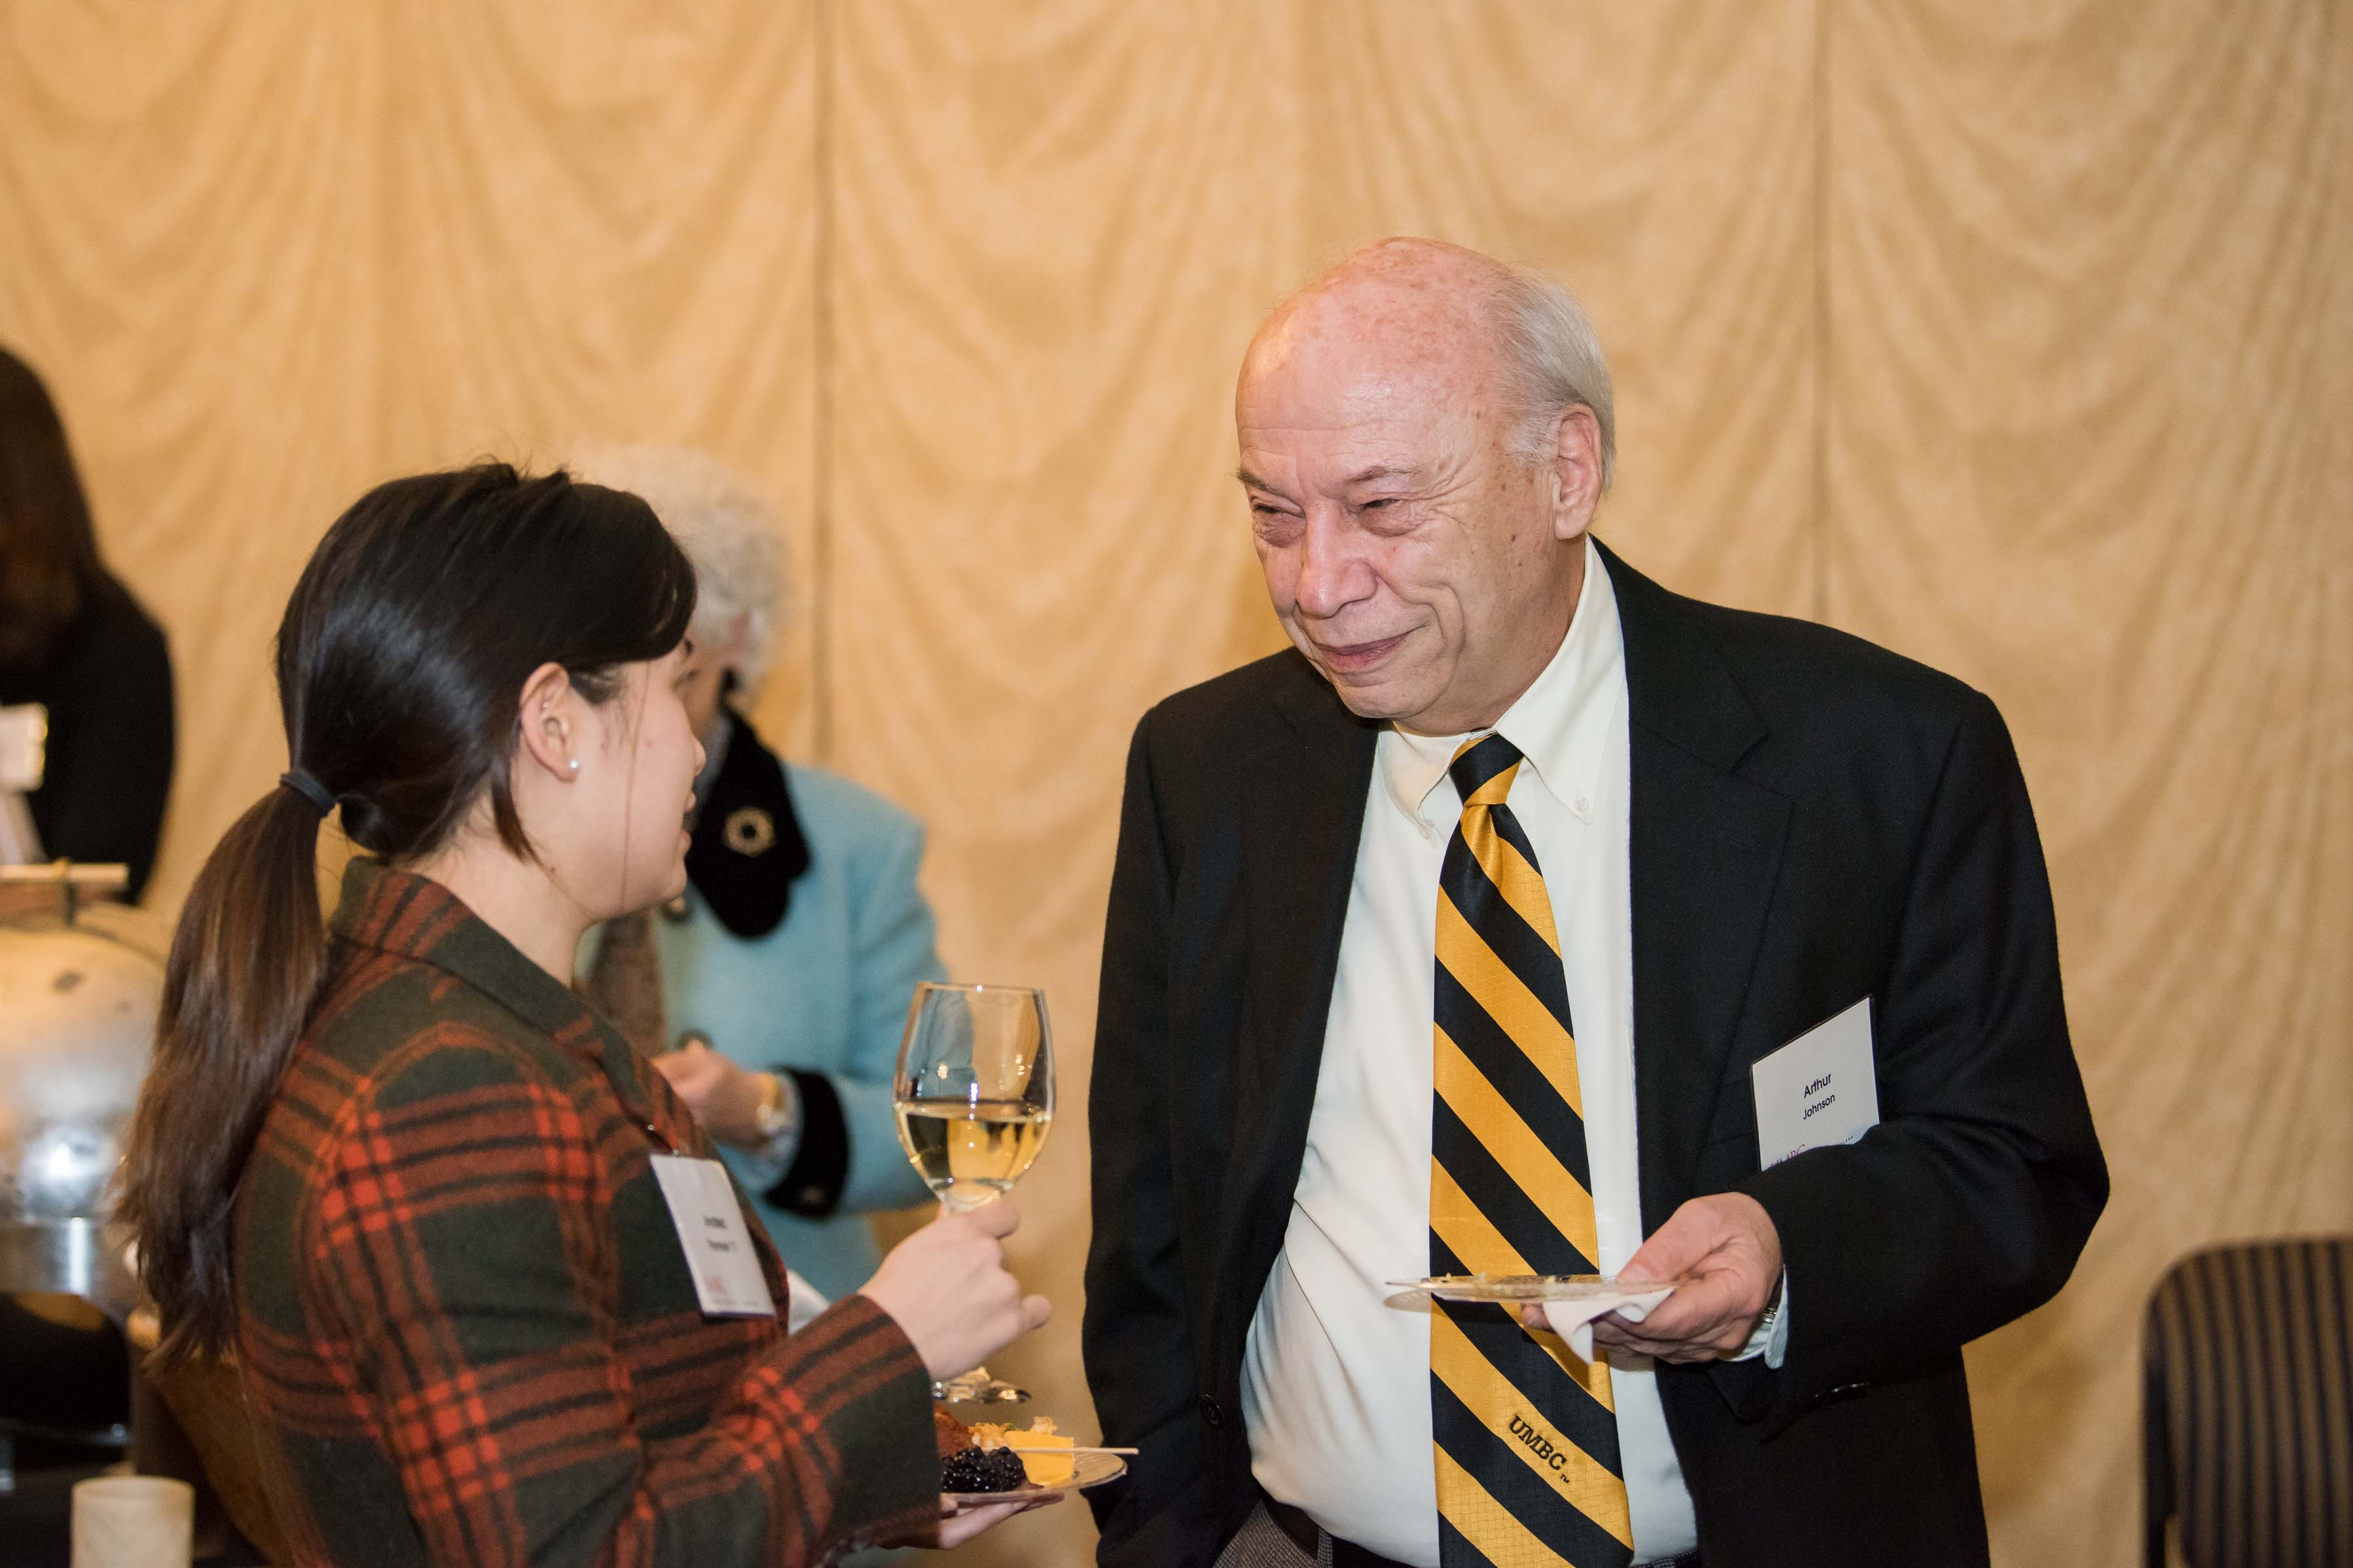 Two people interacting at Annapolis alumni reception